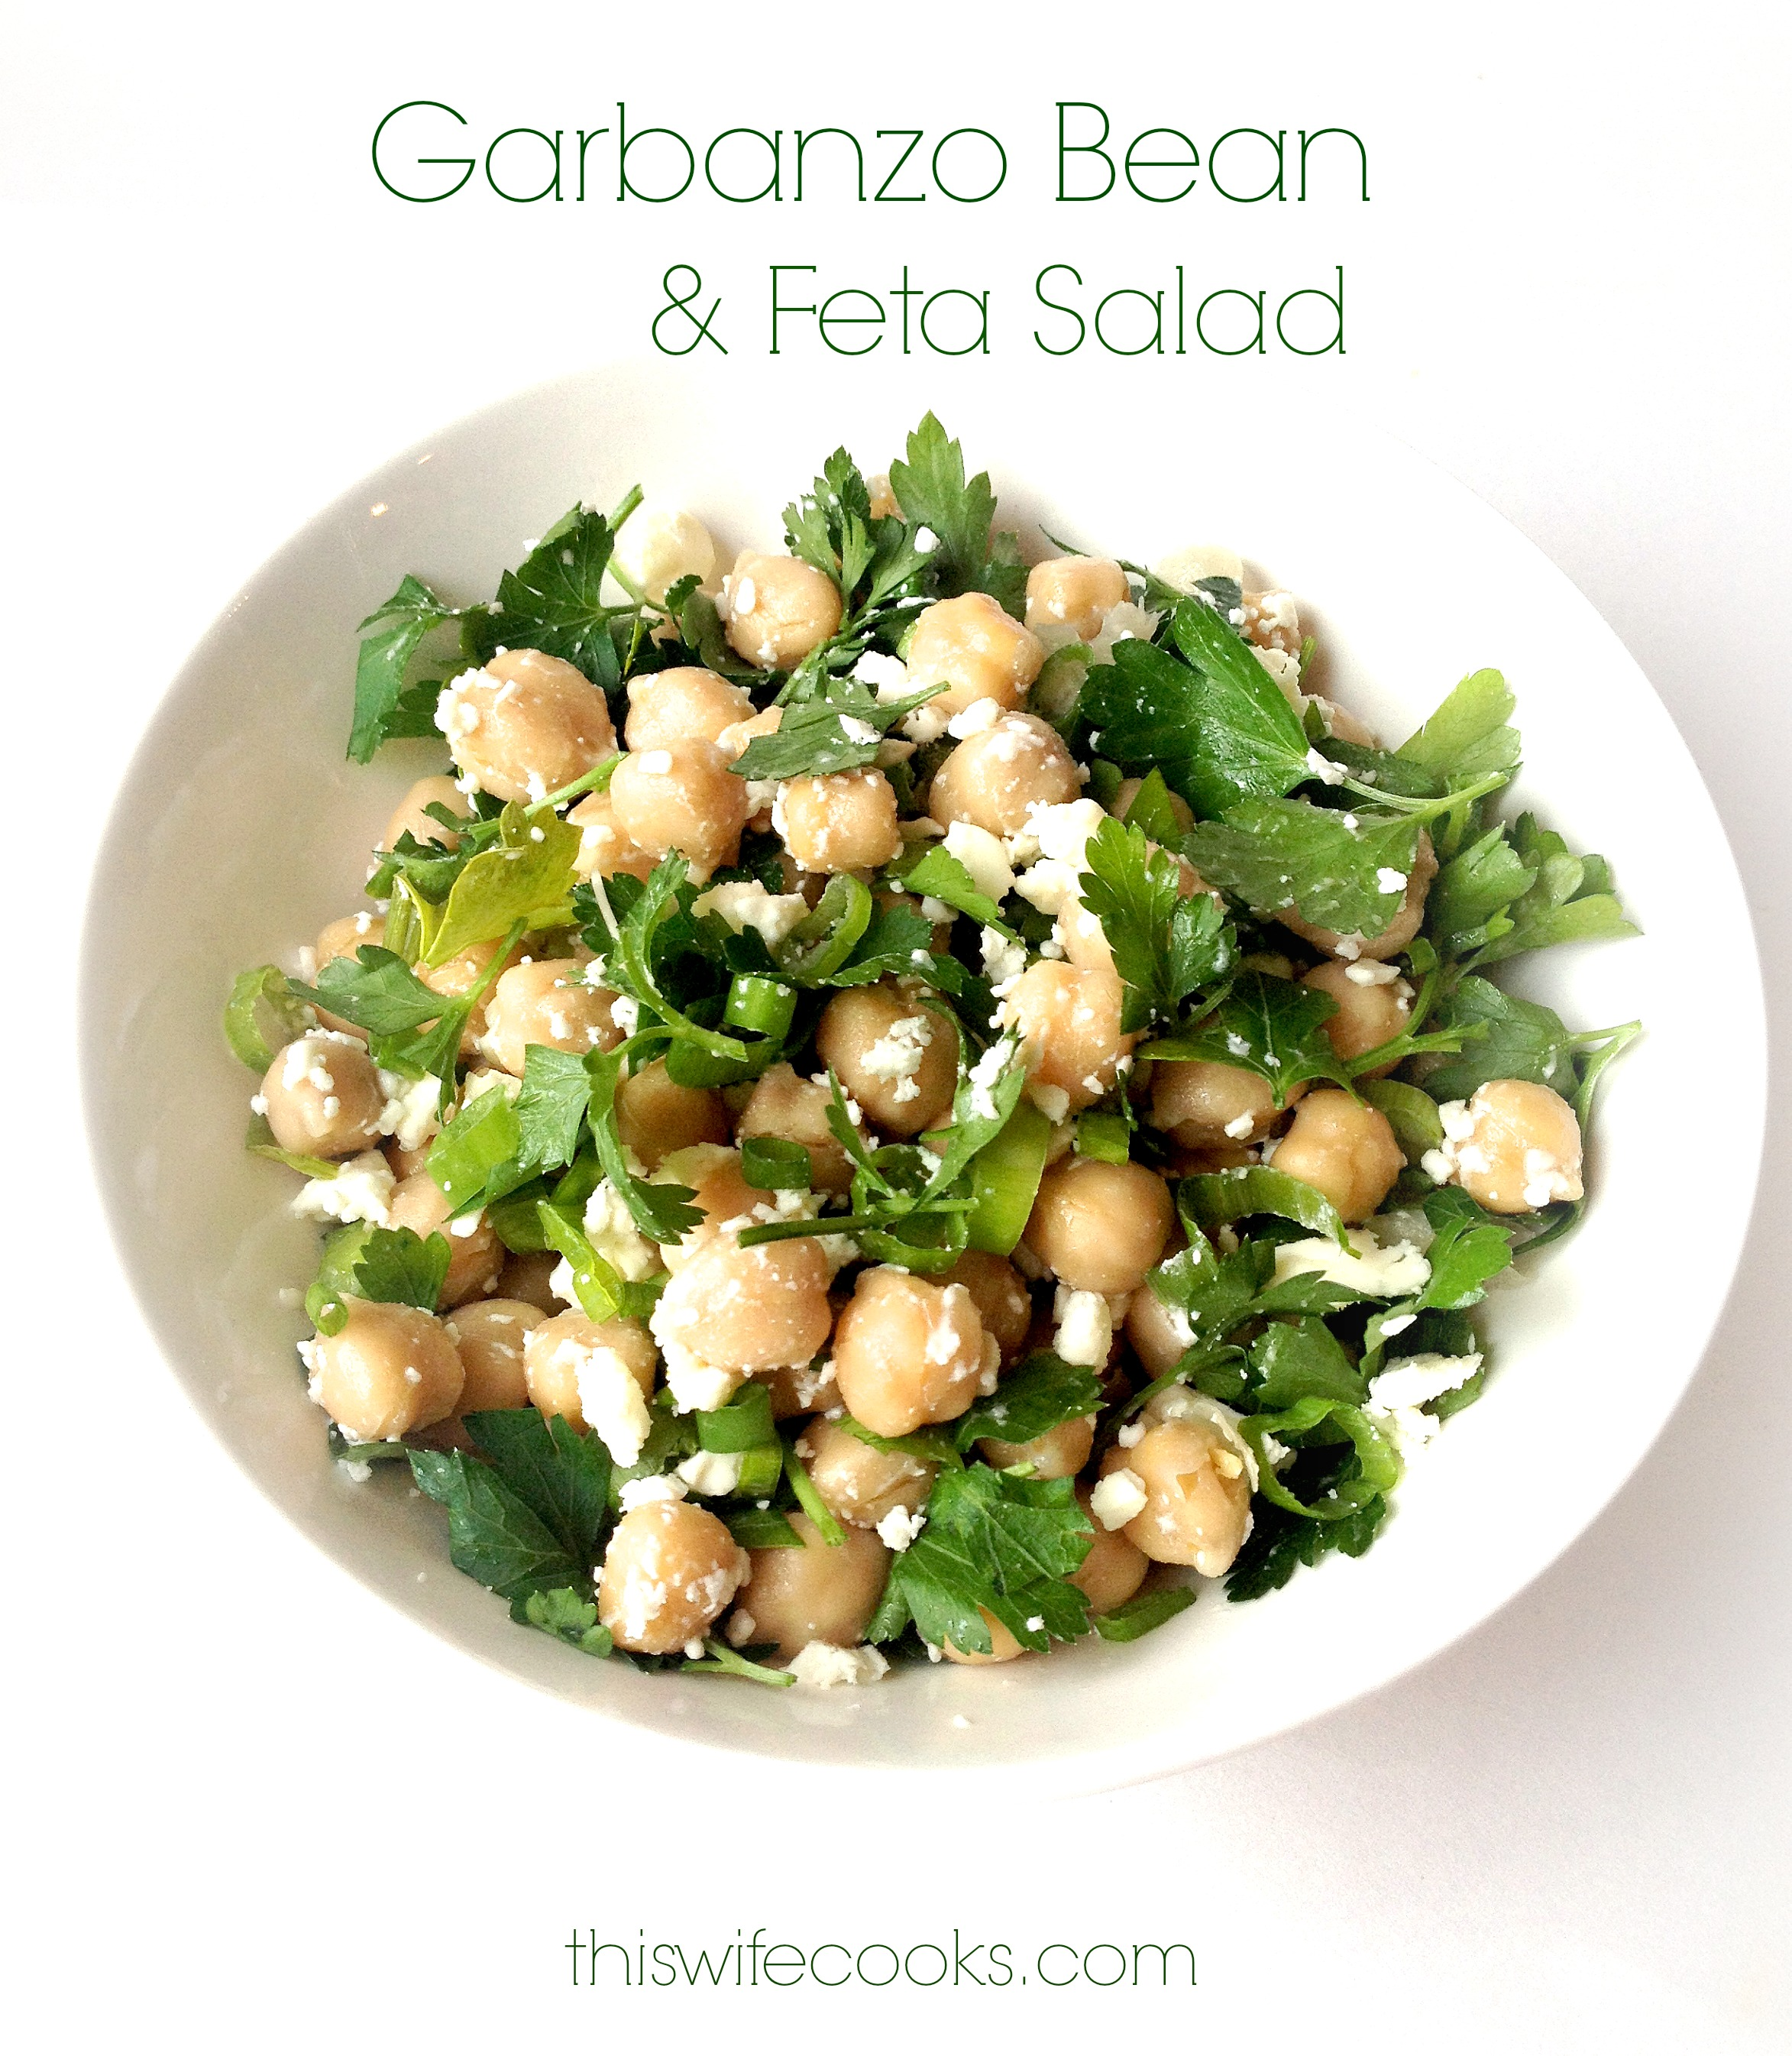 Garbanzo Bean and Feta Salad | This Wife Cooks